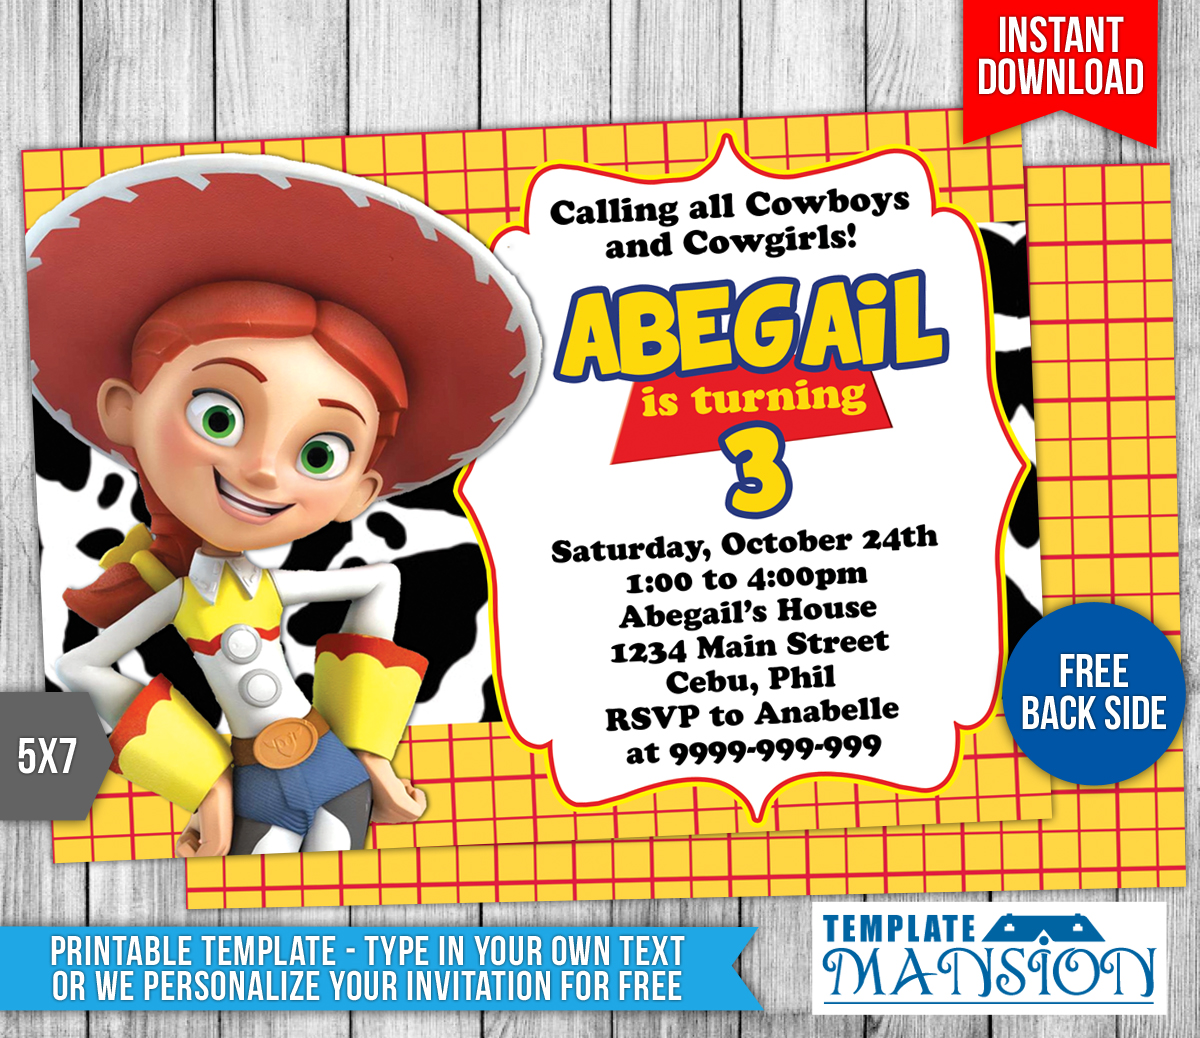 Toy story birthday invitation template 5 by for Toy story invites templates free